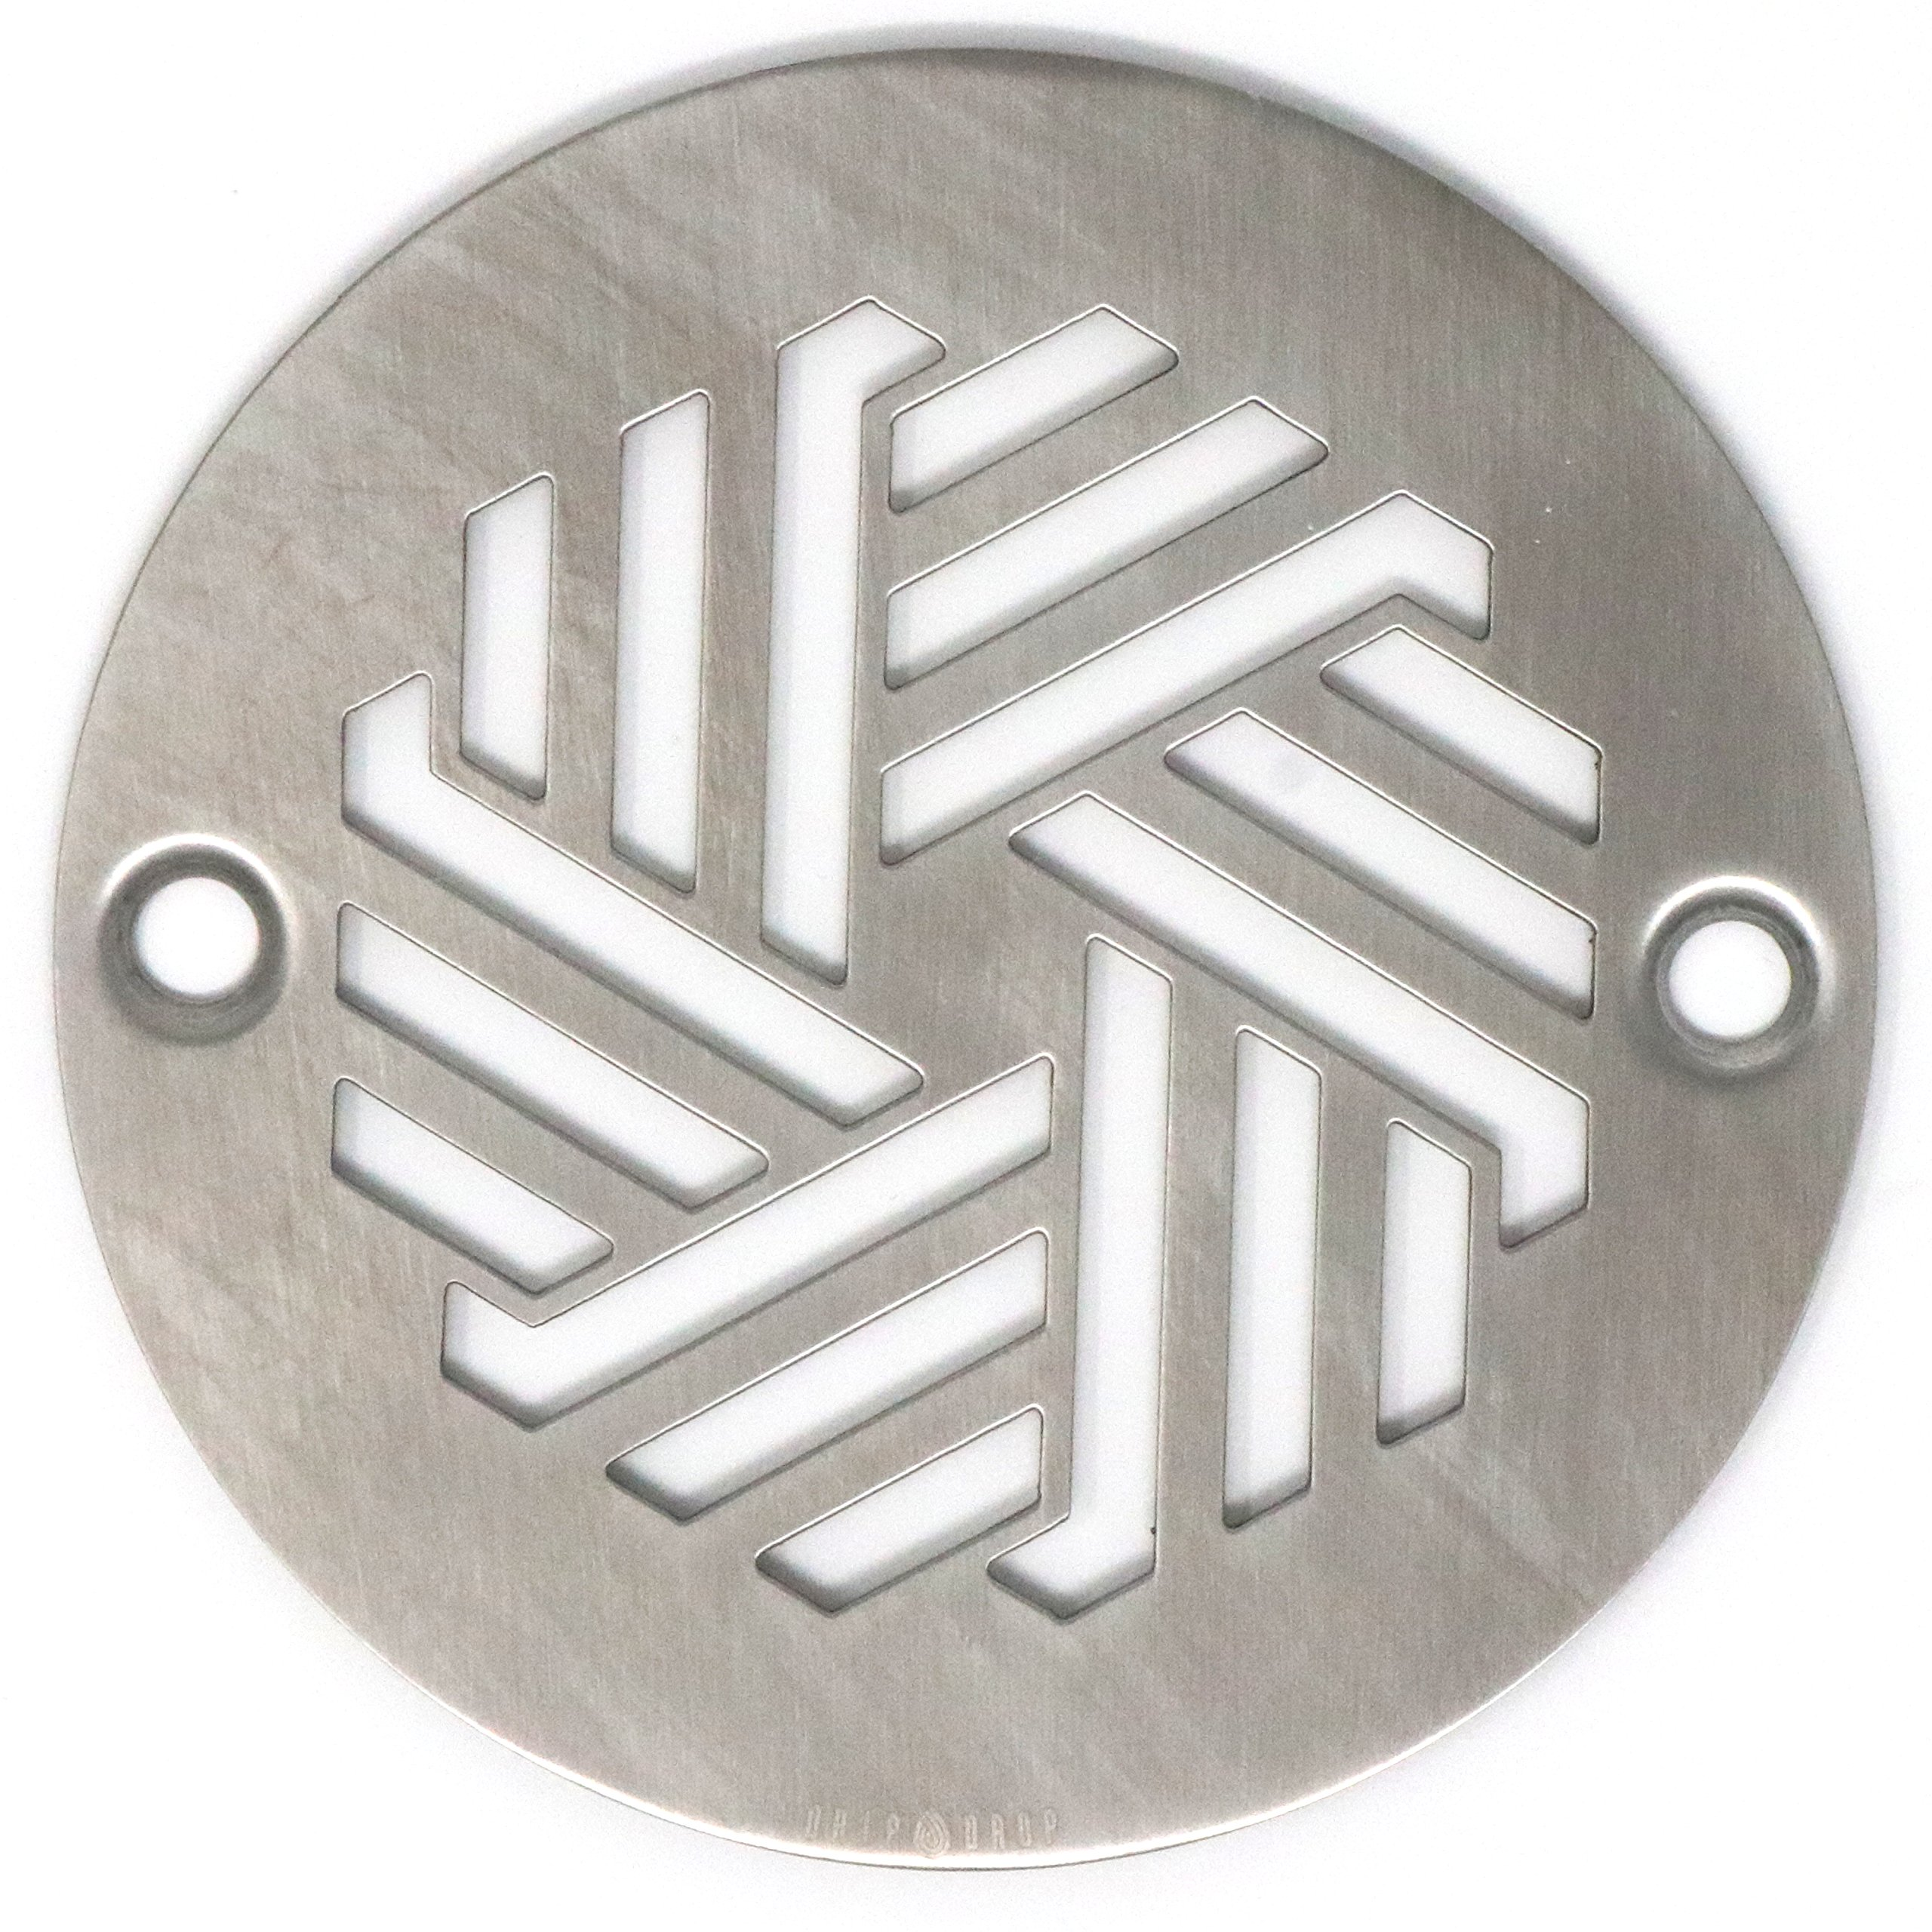 DRIP DROP Custom Shower Drain Cover (4in Round - Hexagon, Brushed Stainless Steel)